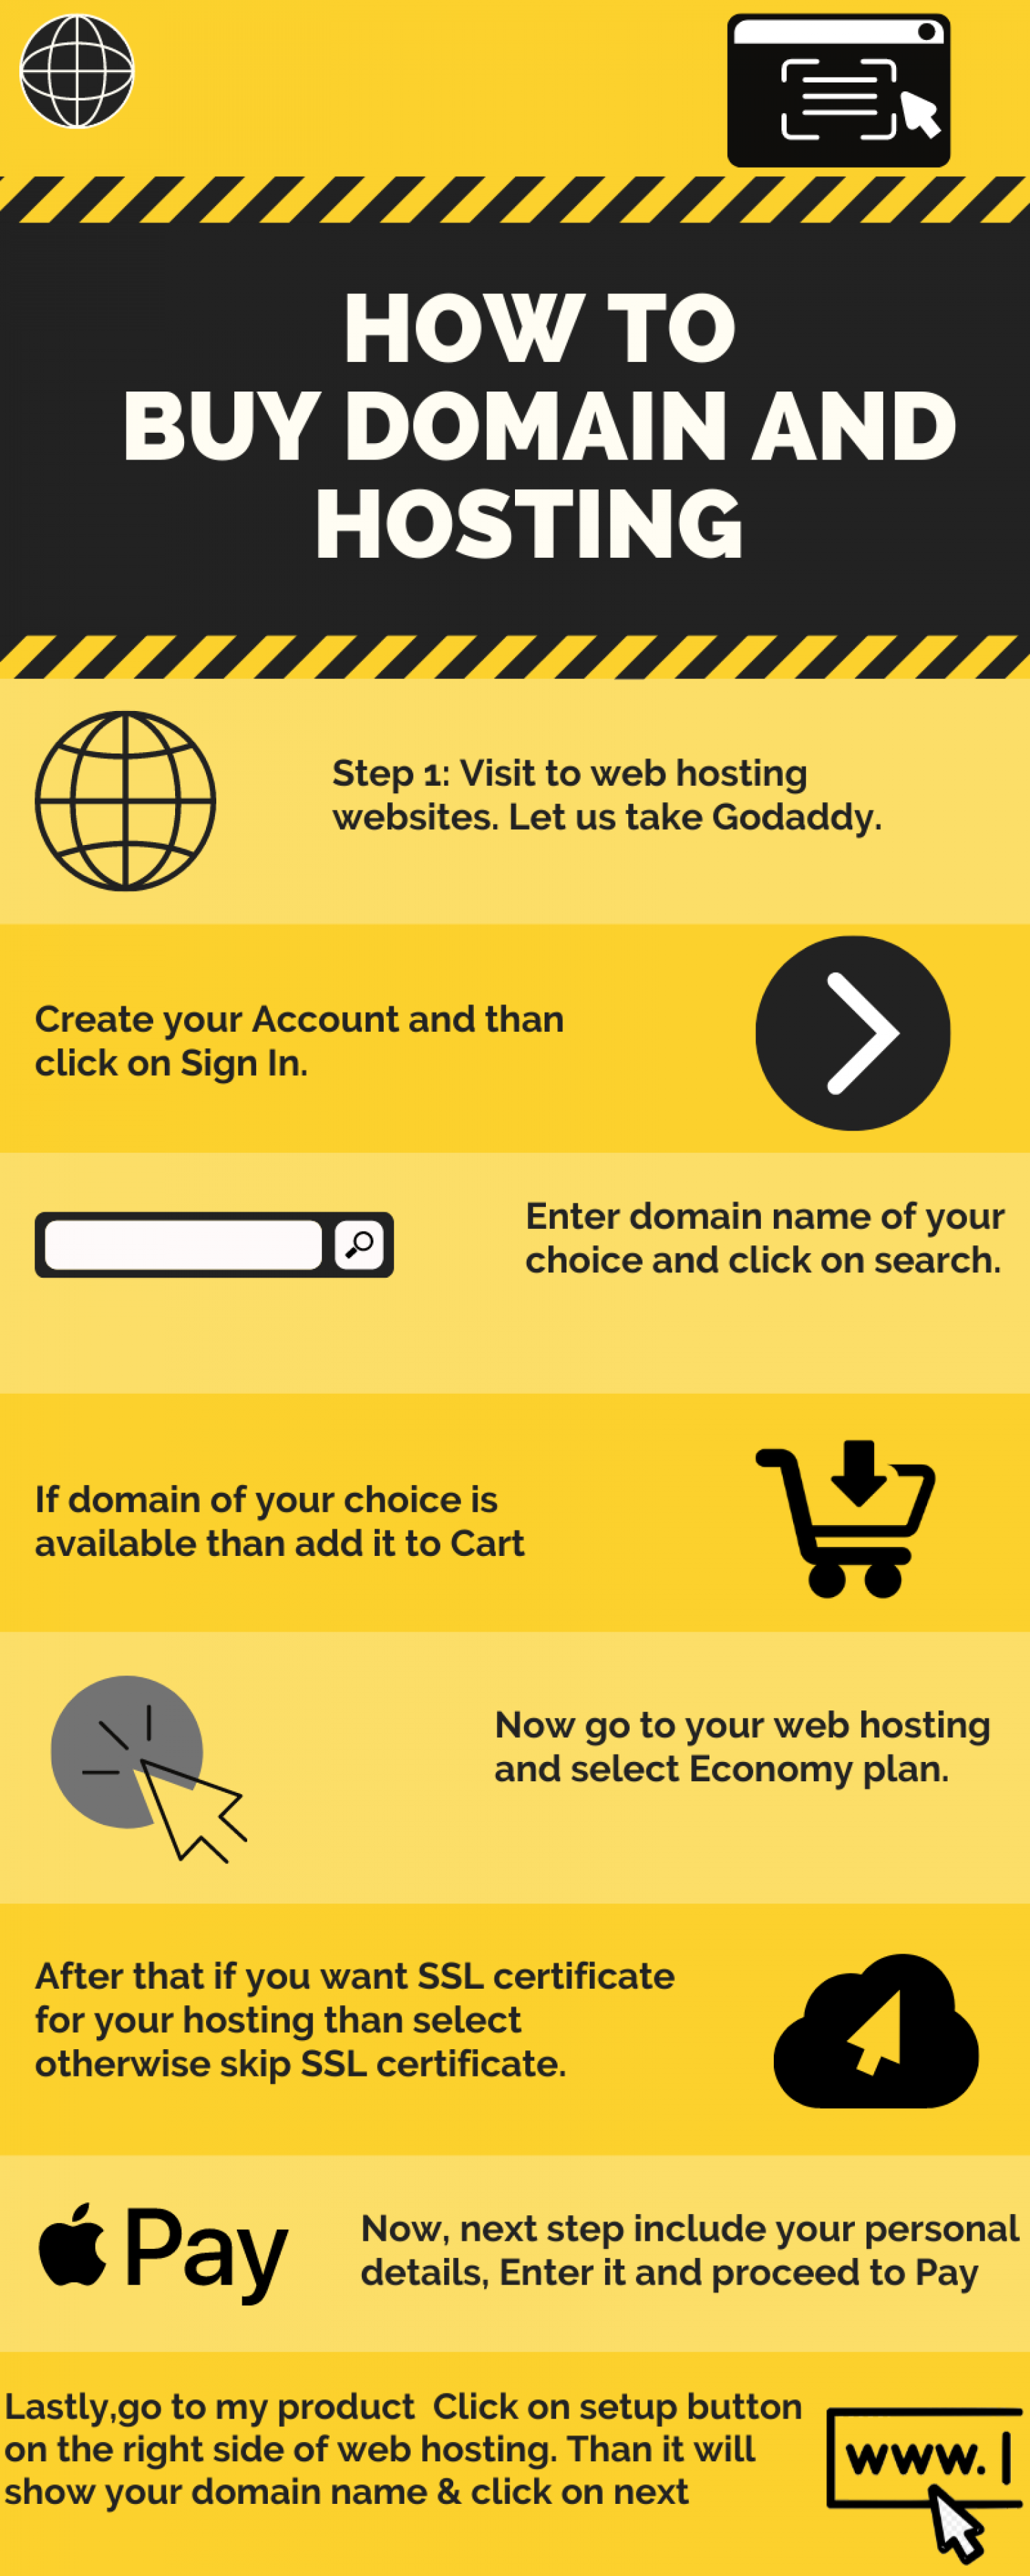 Steps to buy Domain and Hosting Infographic